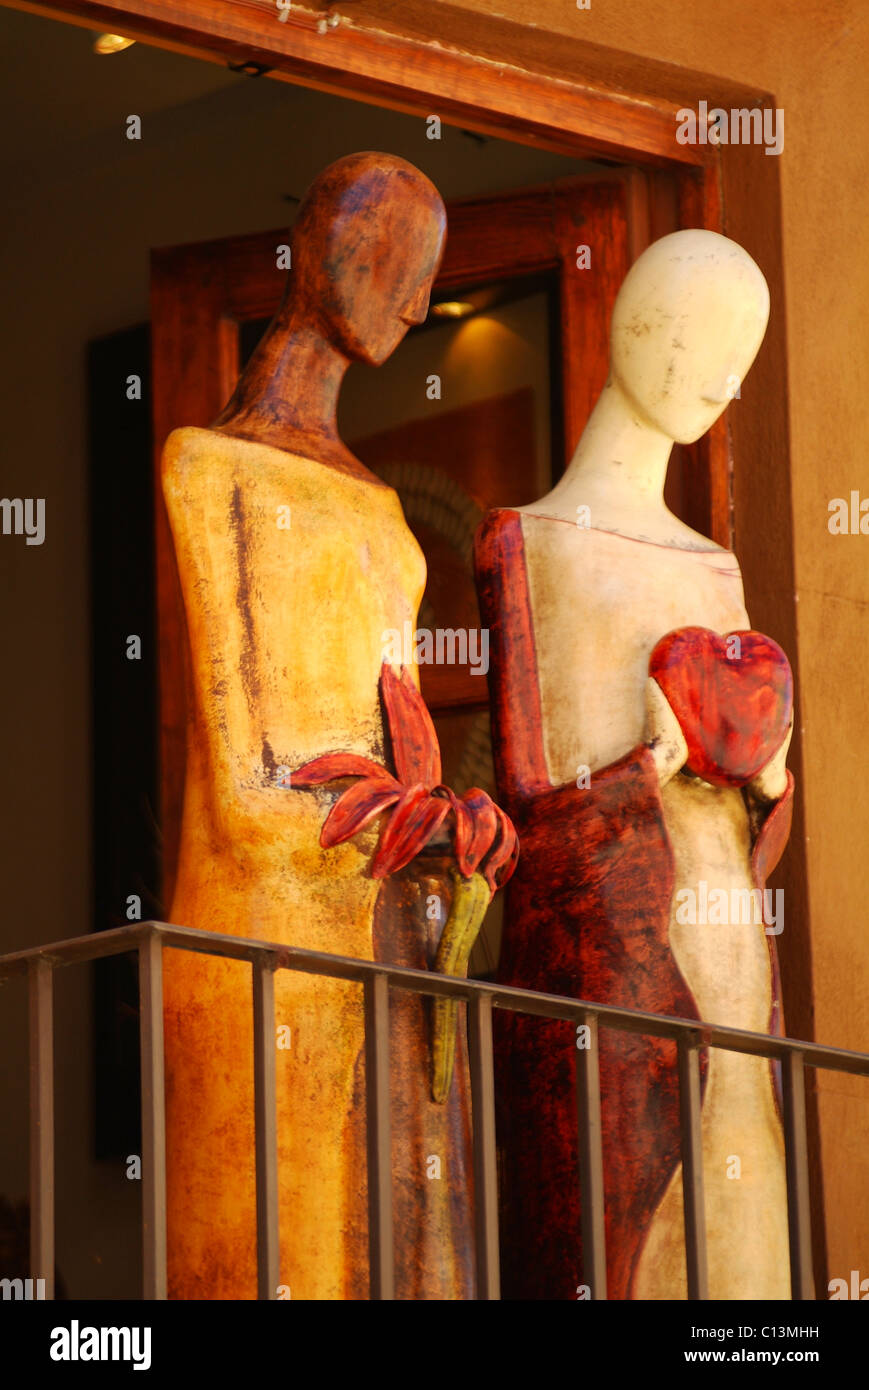 Mannequins decorate a balcony in a shop in San Miguel de Allende, Mexico, October 3, 2010. - Stock Image